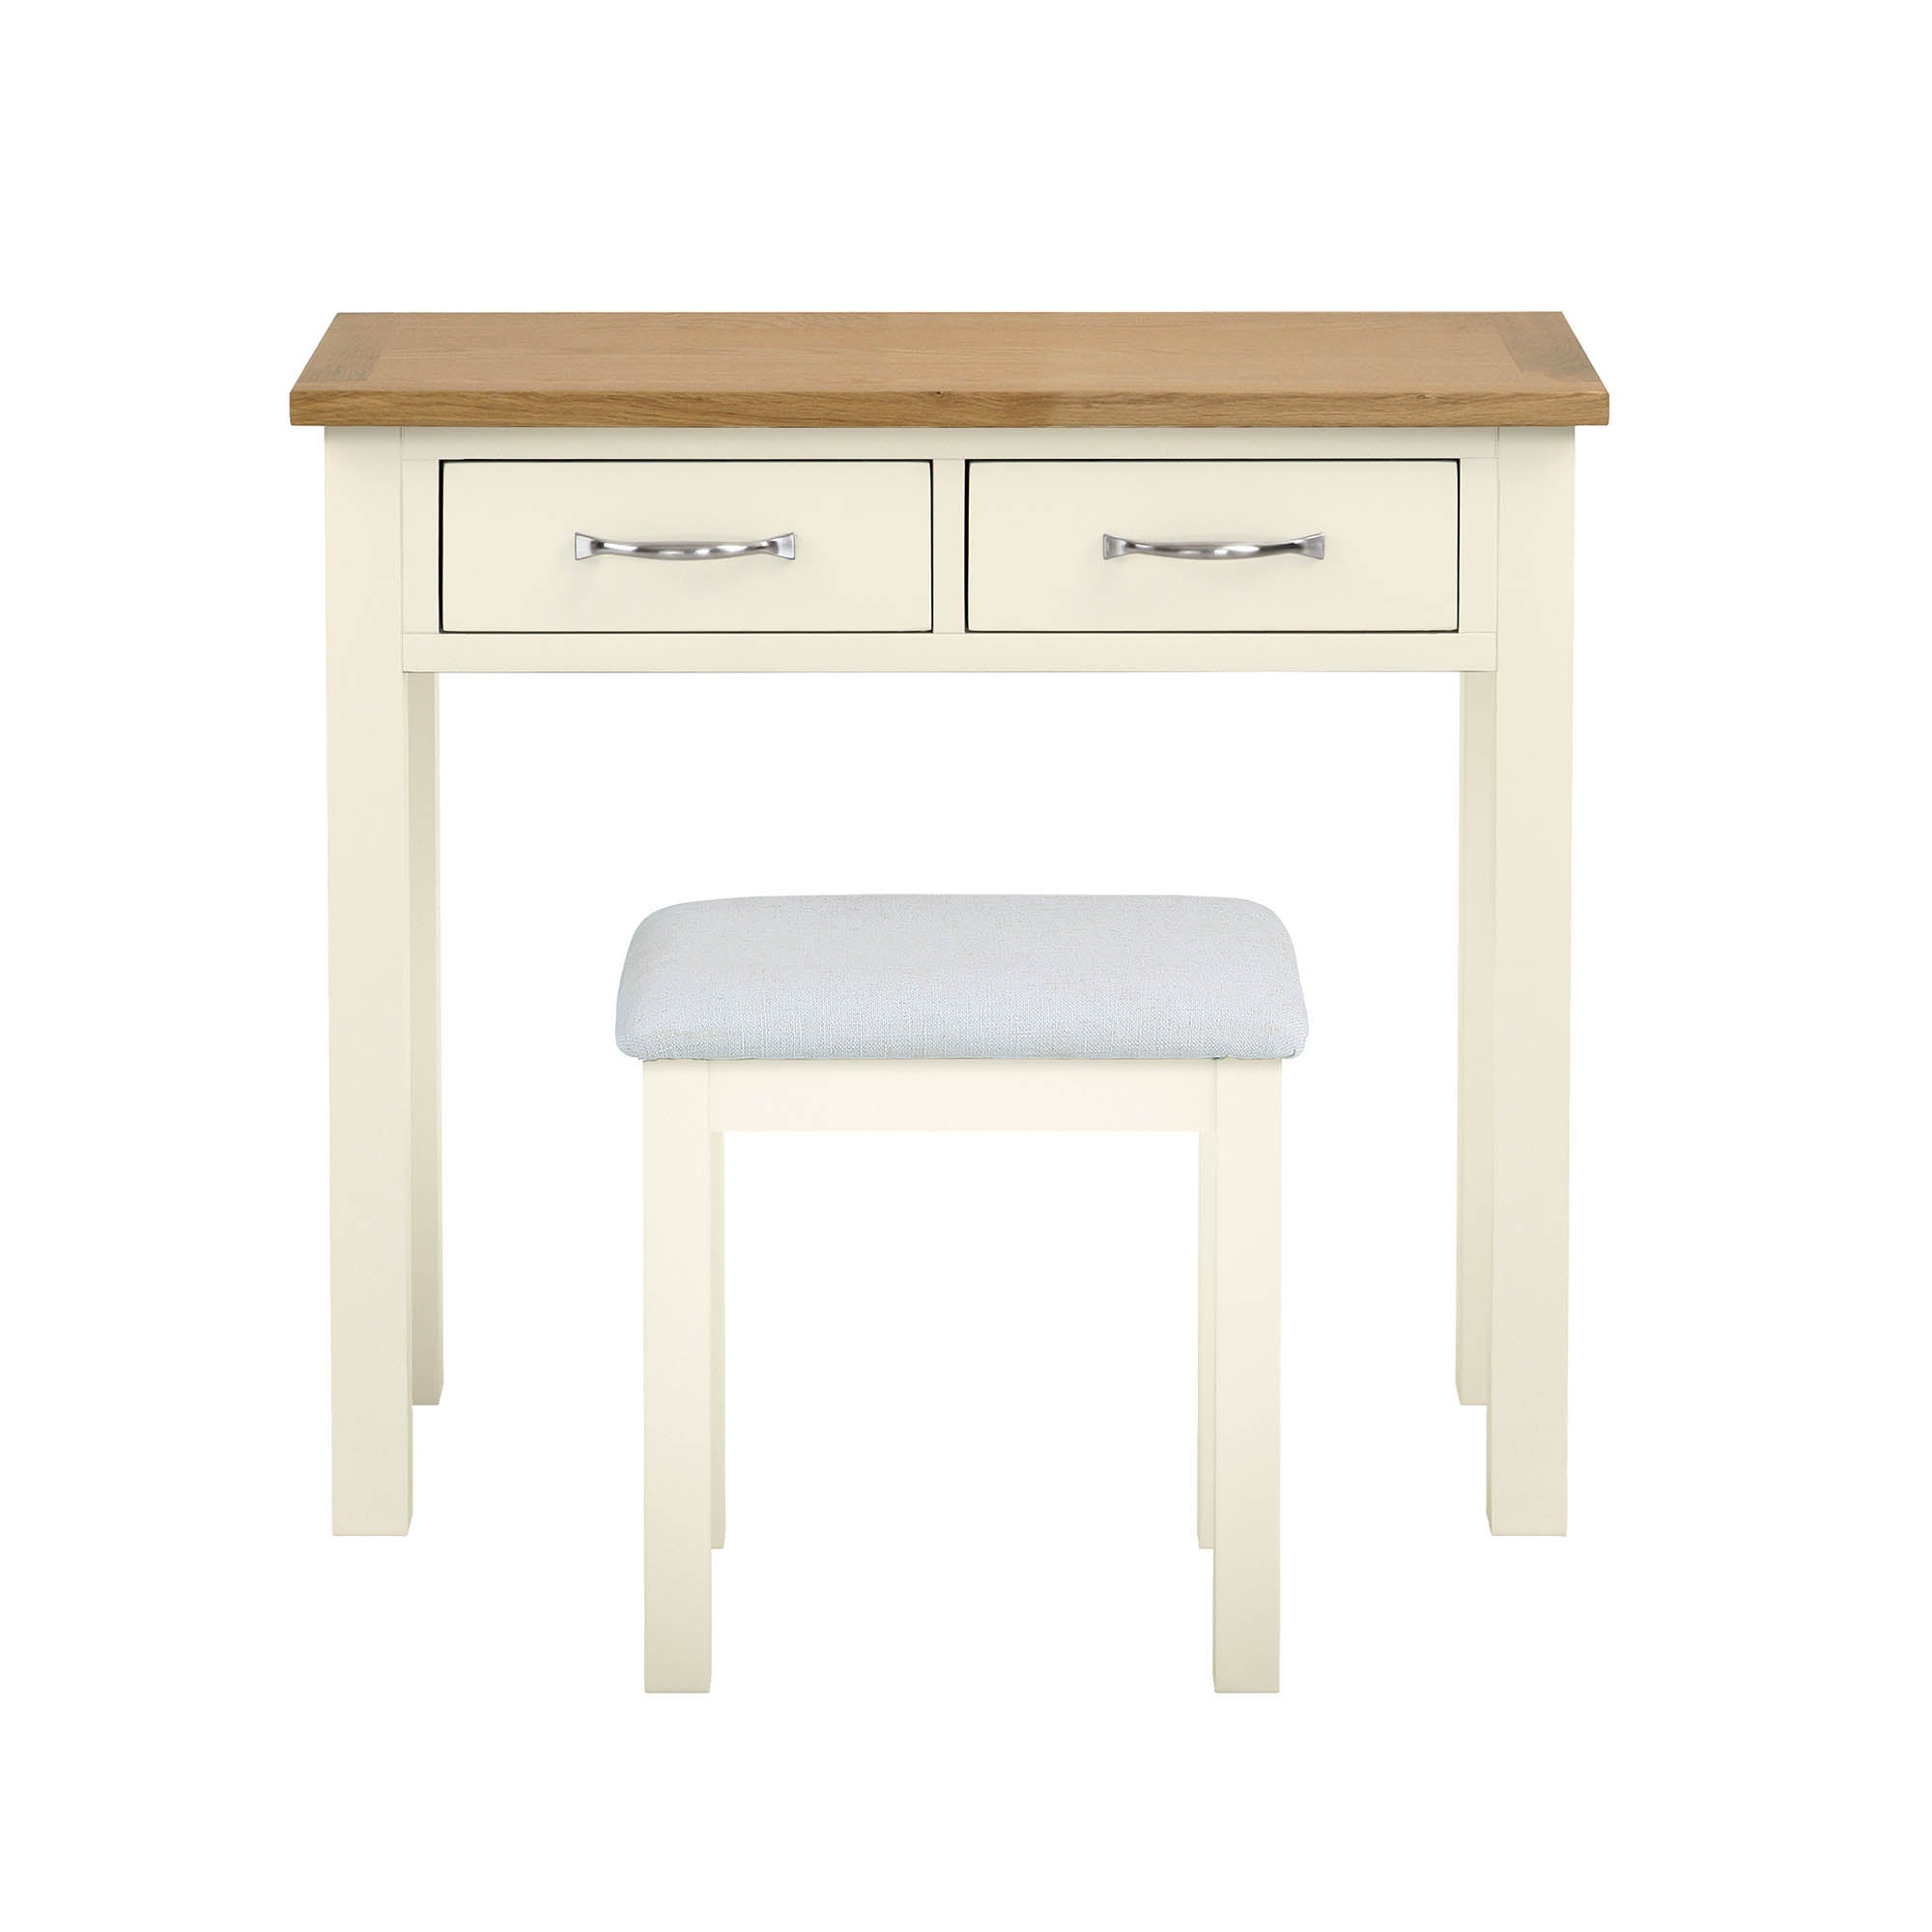 Photo of Sidmouth cream dressing table and stool cream -natural-